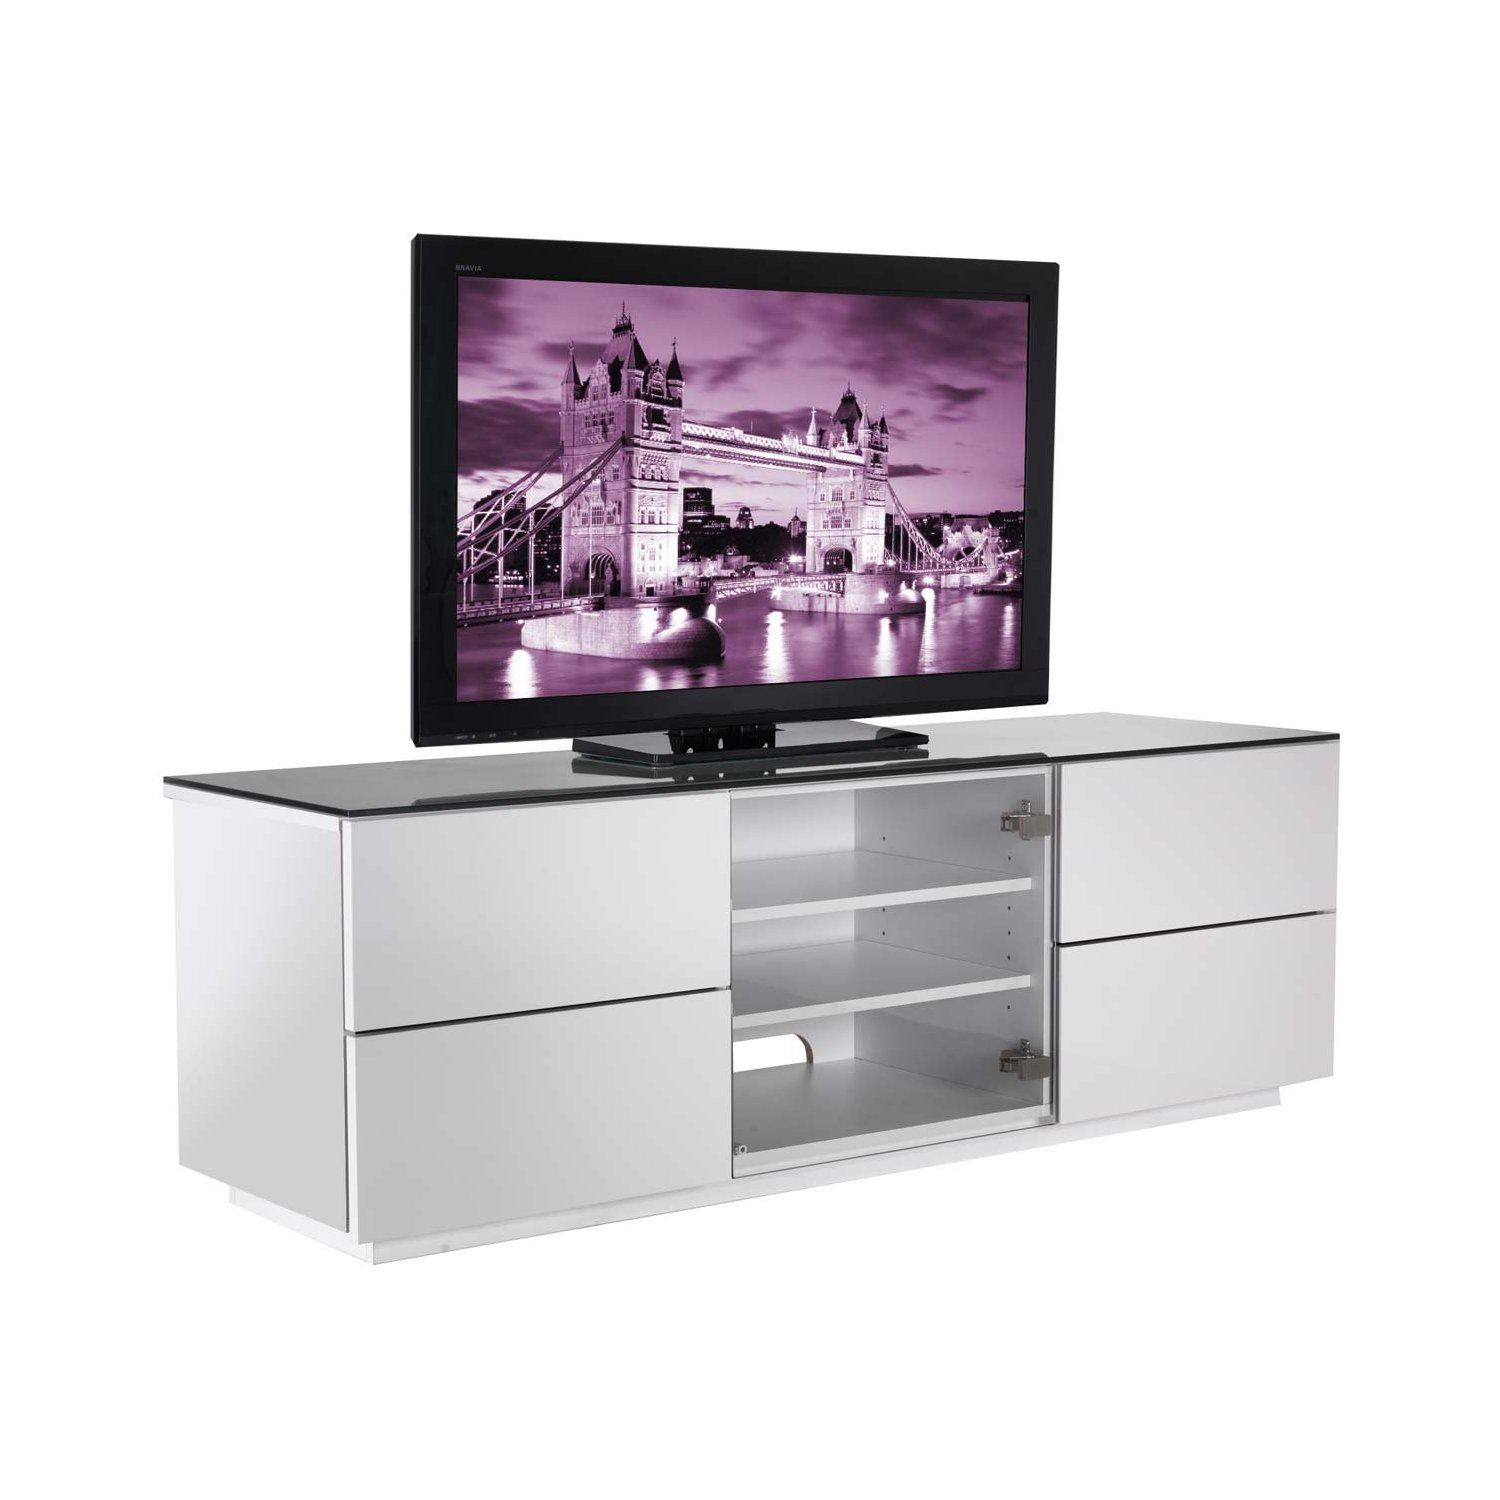 UK-CF High Gloss White Cabinet For TVs up to 60 inch: Amazon.co.uk ...